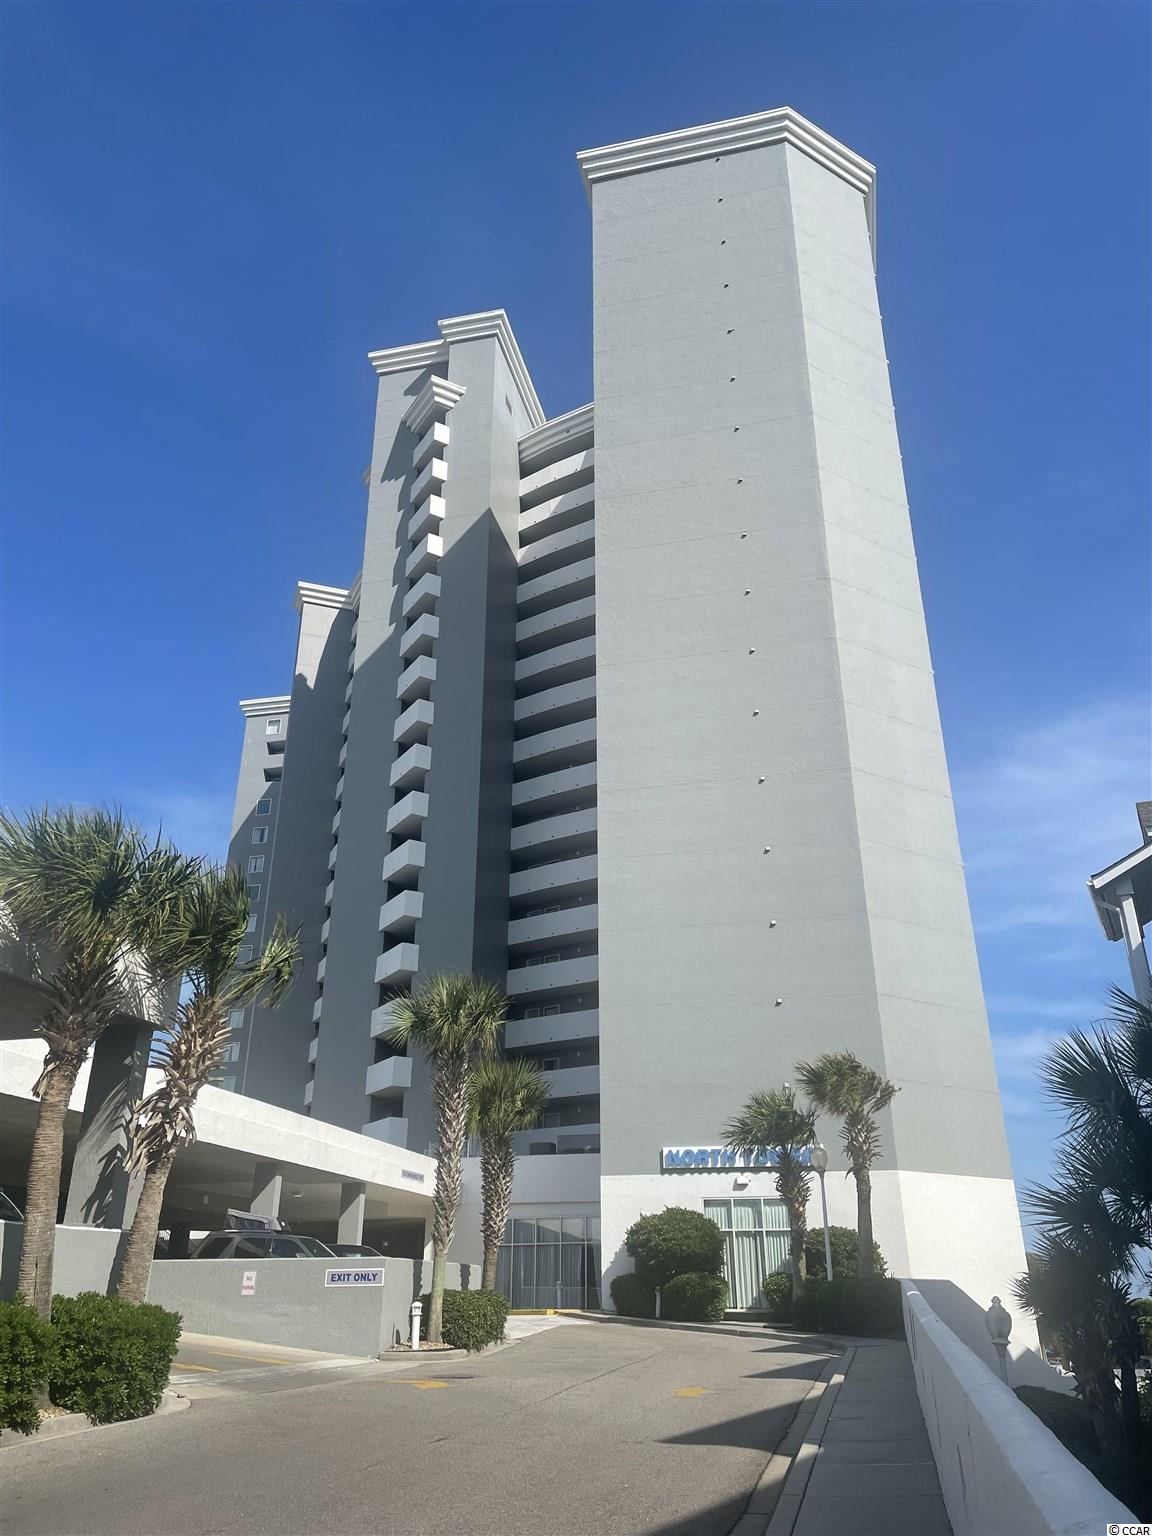 The North Side of Myrtle Beach, true forward facing OCEANFRONT with views from the living room and kitchen, 1 bedroom, 1 bath condo in highly desirable Seawatch North Tower in the heart of Myrtle Beach. This furnished condo offers an open floor plan with large living area, updated NEW wood-look porcelain tile flooring installed spring 2021. New sleeper sofa in living room, granite counters, mounted Tv in living room and fully stocked kitchen, breakfast bar, dining area and large bedroom. Step out onto the balcony to relax and enjoy the unlimited ocean views. Seawatch has it all!  Amenities include private beach access, indoor and outdoor pools and lazy river, fitness center, and an onsite cafe'. It is located in the Arcadian Shores area, near restaurants, golf courses, Tanger Outlet shopping,  and nearby entertainment. This is a perfect investment opportunity or second home....schedule your appointment today to see this gem!